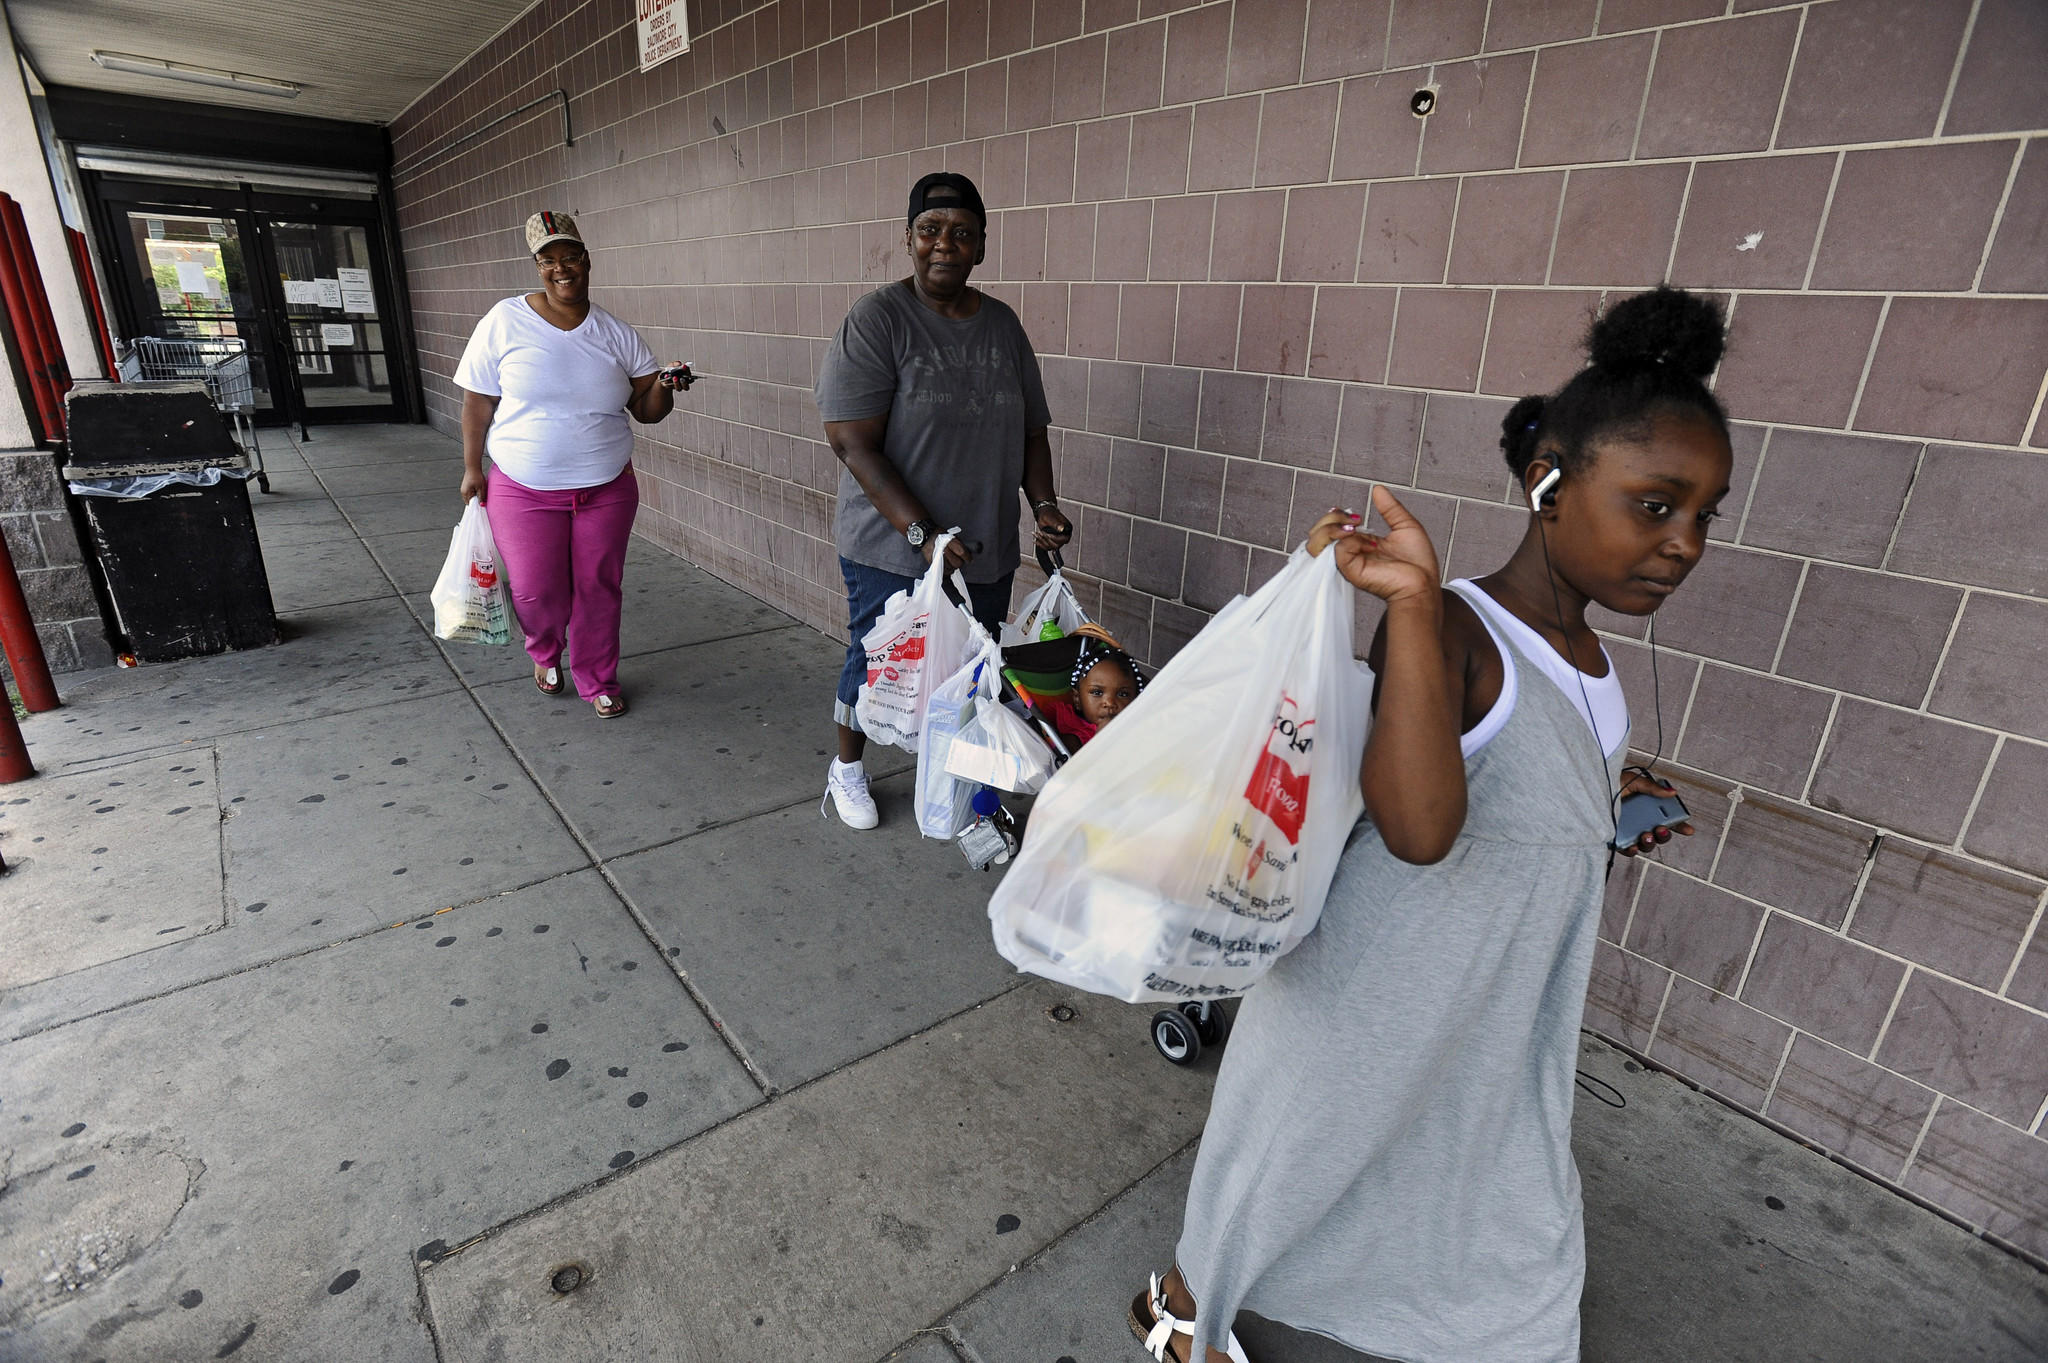 Tamia Allen, 8, right, leaves the Stop Shop & Save store at 1600 Harford Avenue in Baltimore with mother Lady Allen, from left, grand mother Marlene Ashe, who is pushing Kadidja Allen, 1.